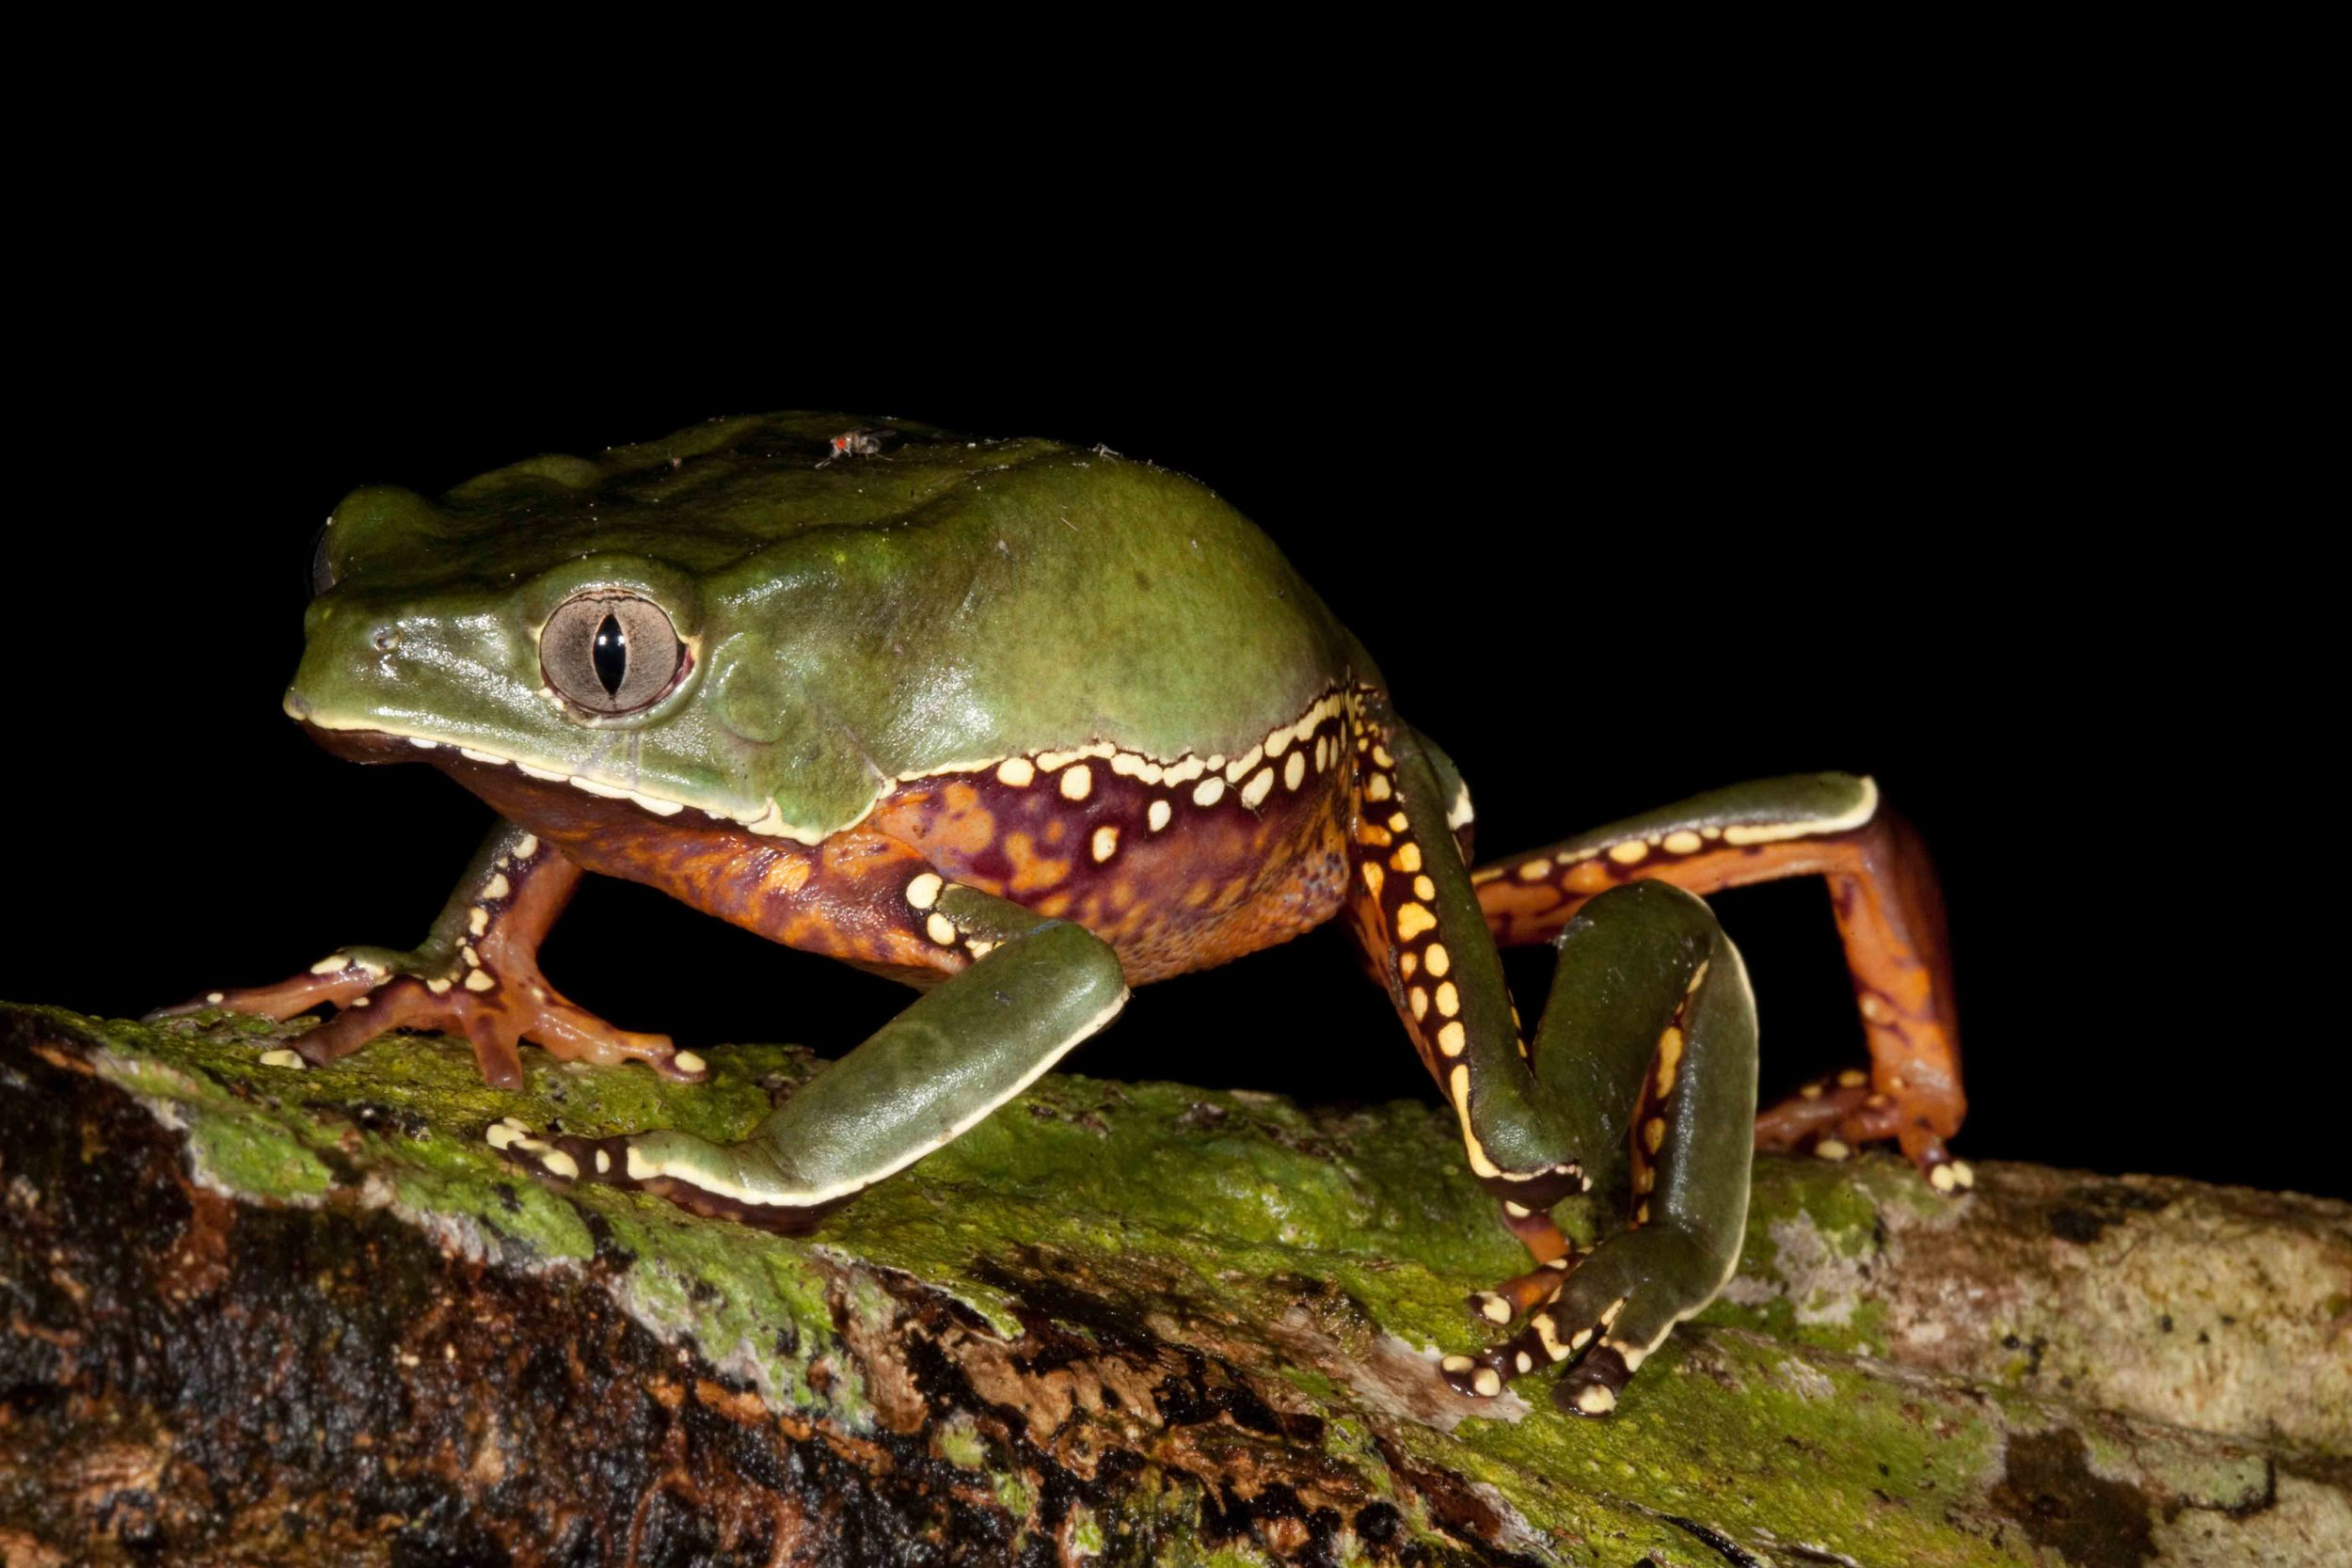 Phyllomedusa bicolor, Giant Monkey Frog (Photo by Matt Cage)